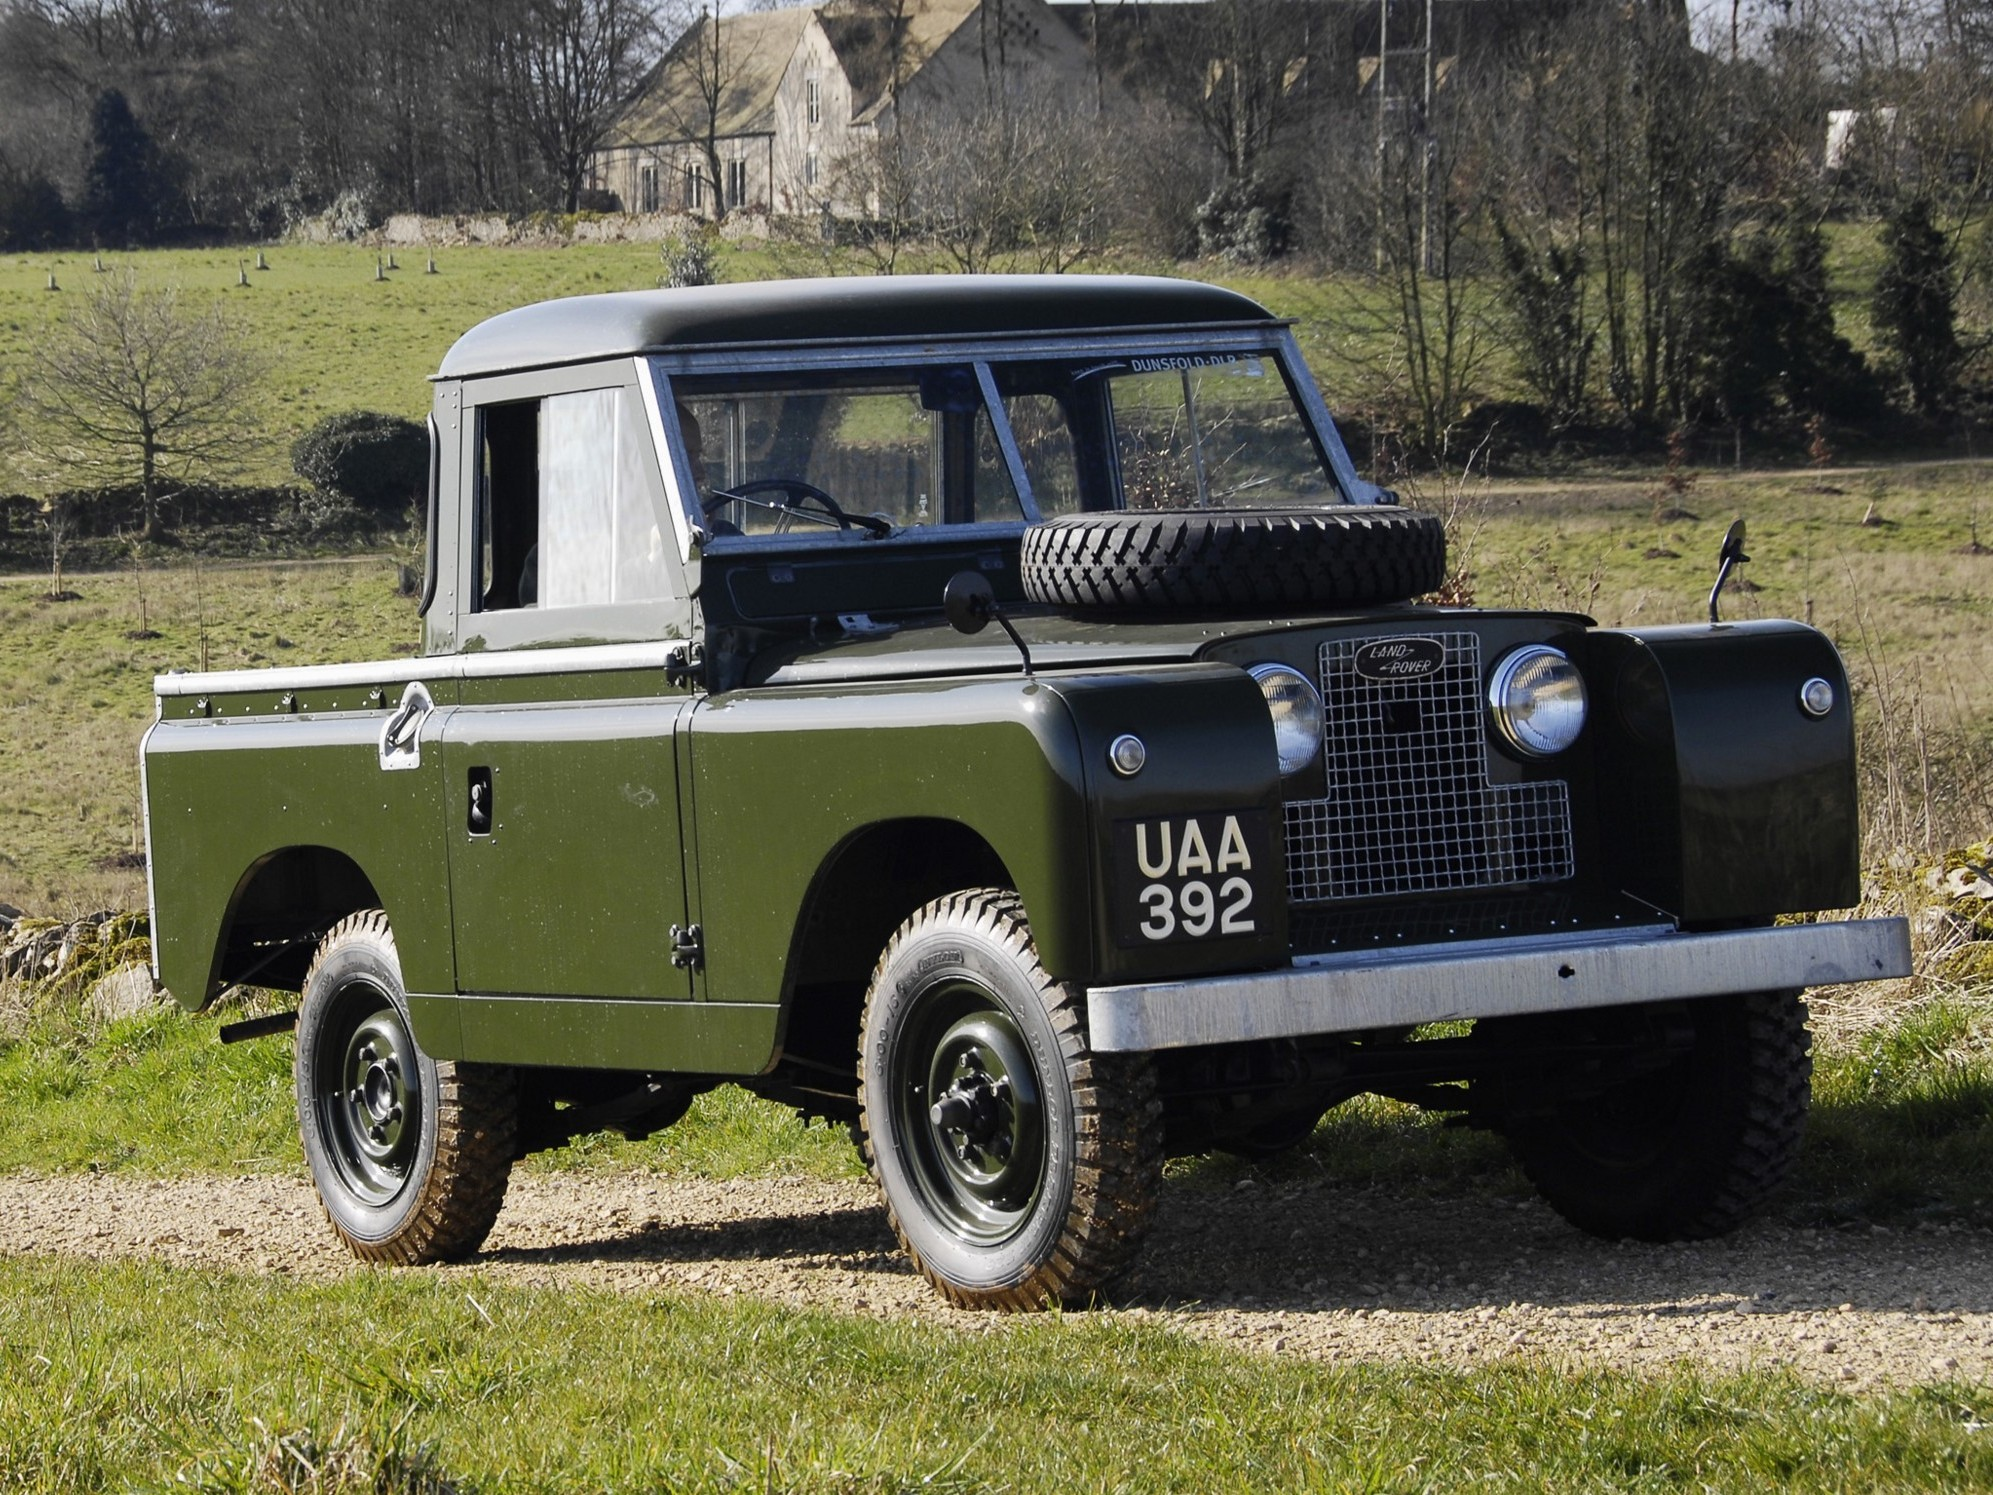 1969 land rover series ii information and photos momentcar. Black Bedroom Furniture Sets. Home Design Ideas